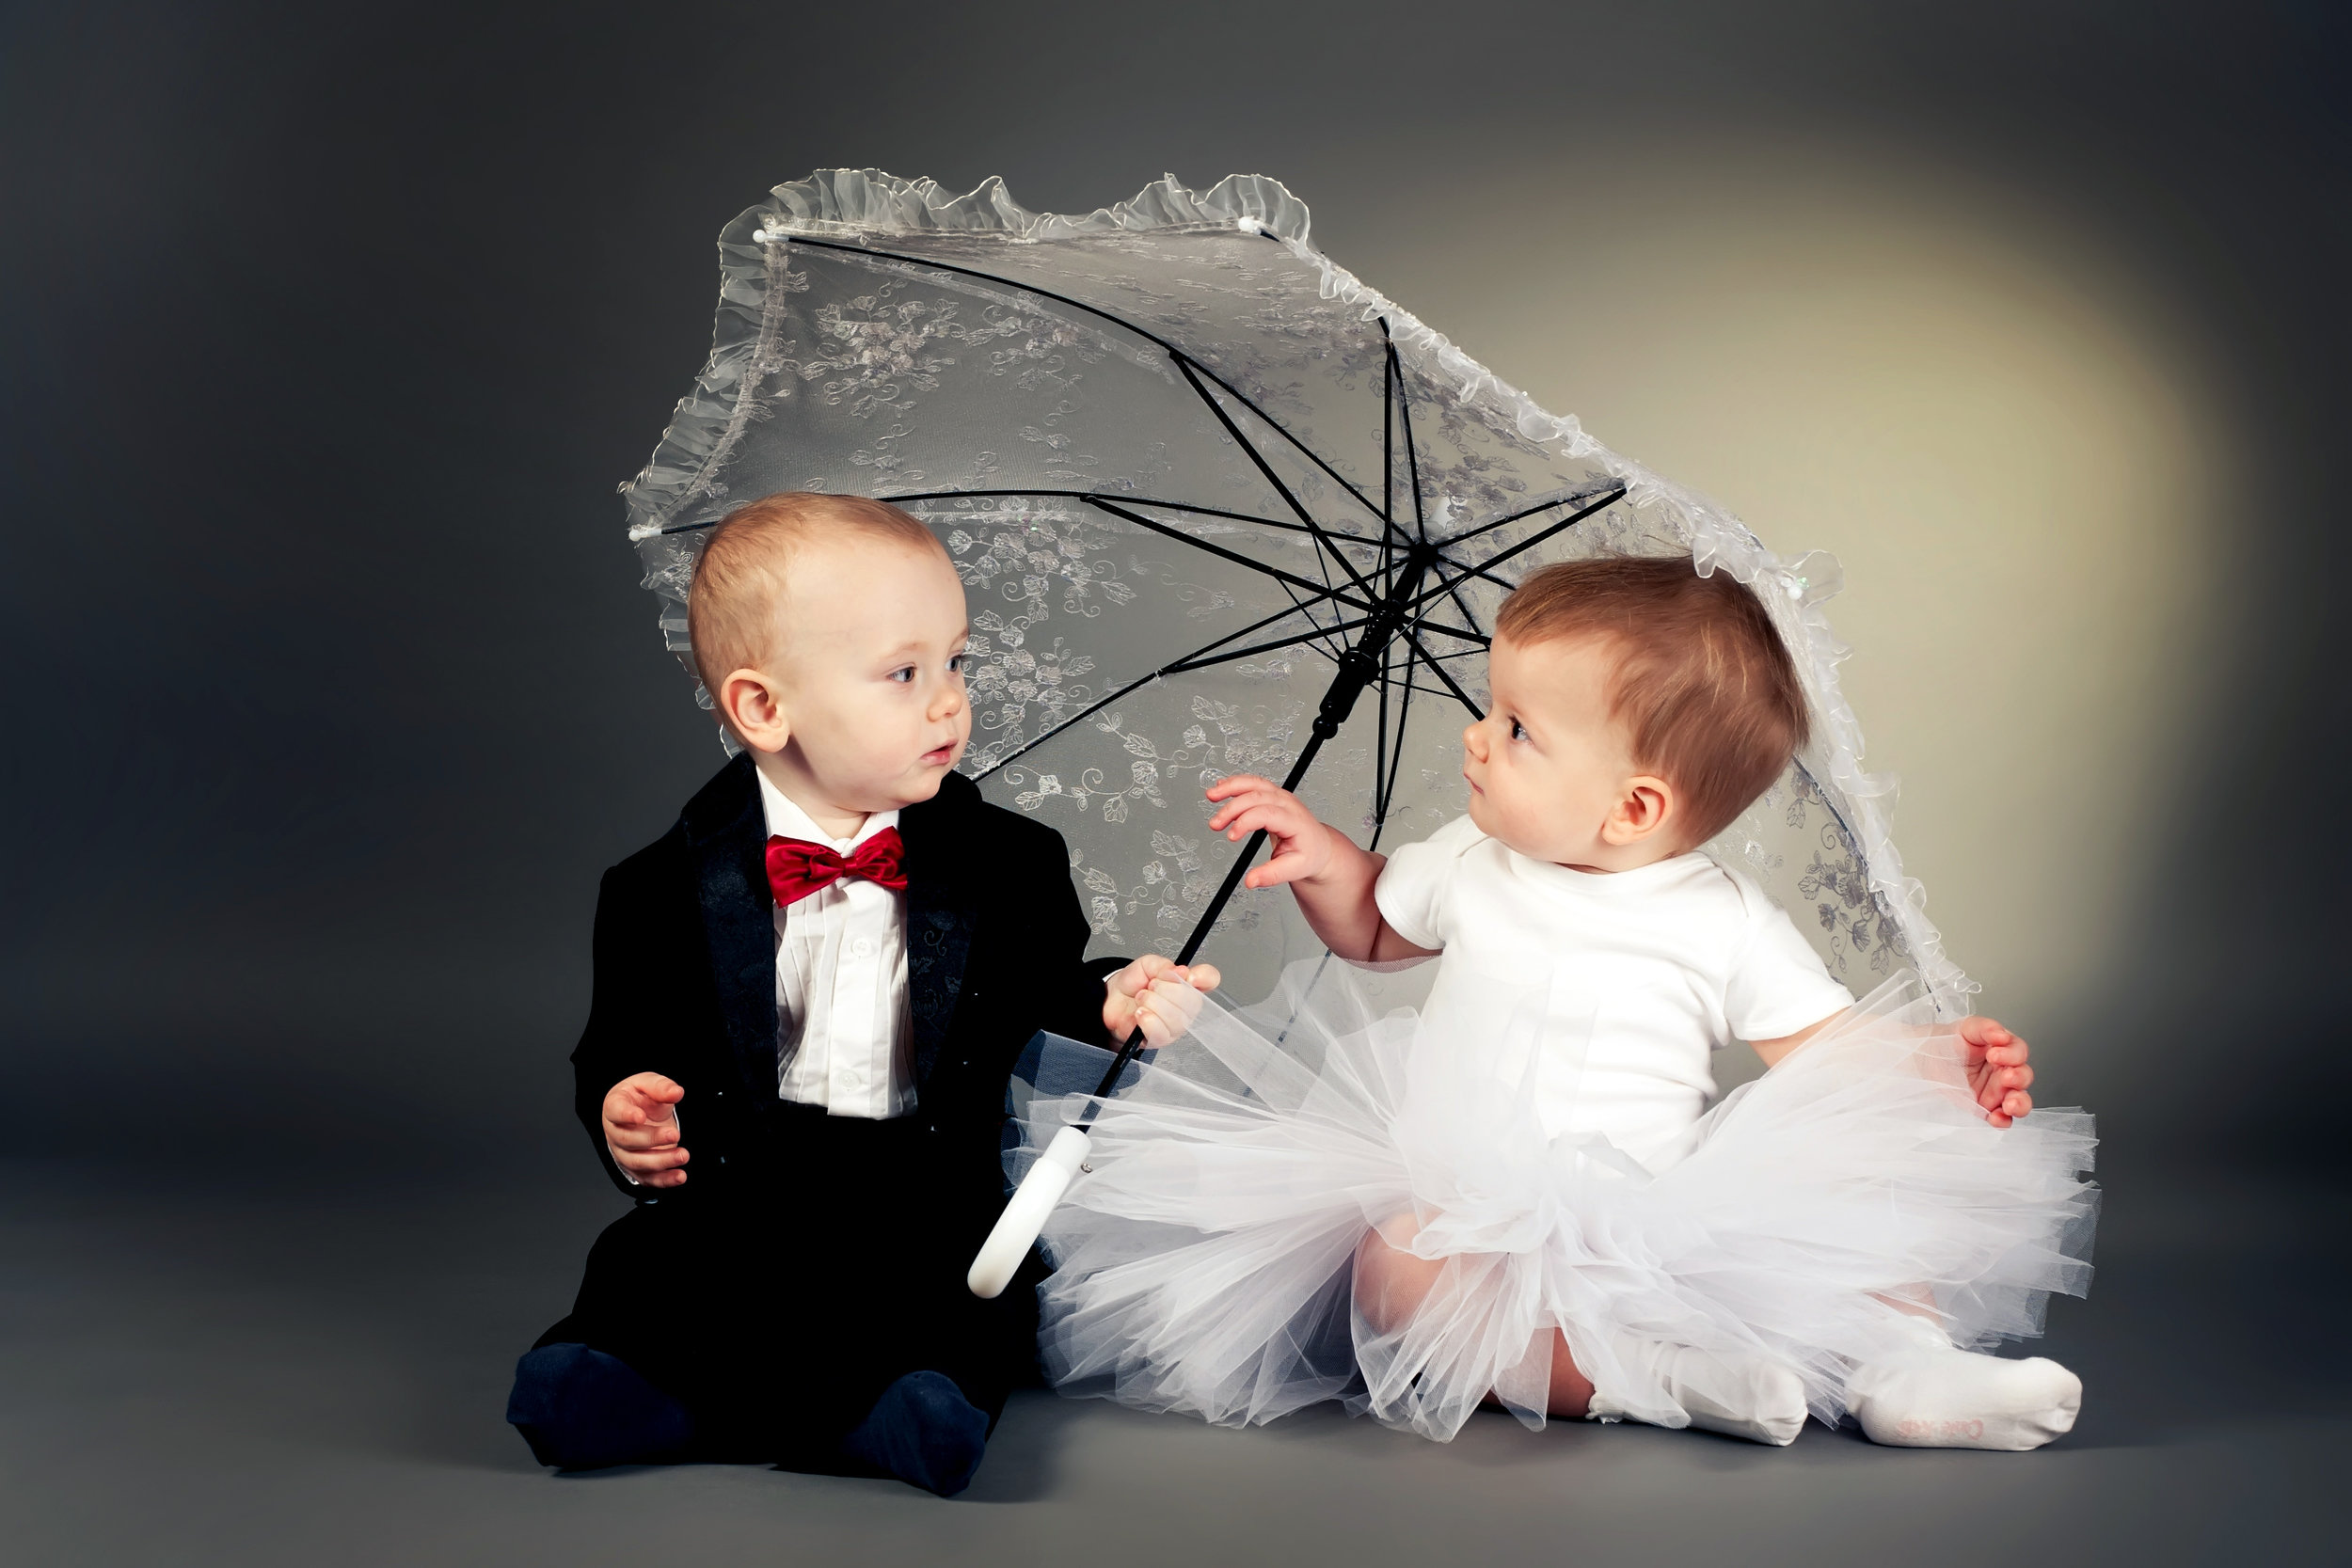 Little bride and groom sitting under an umbrella